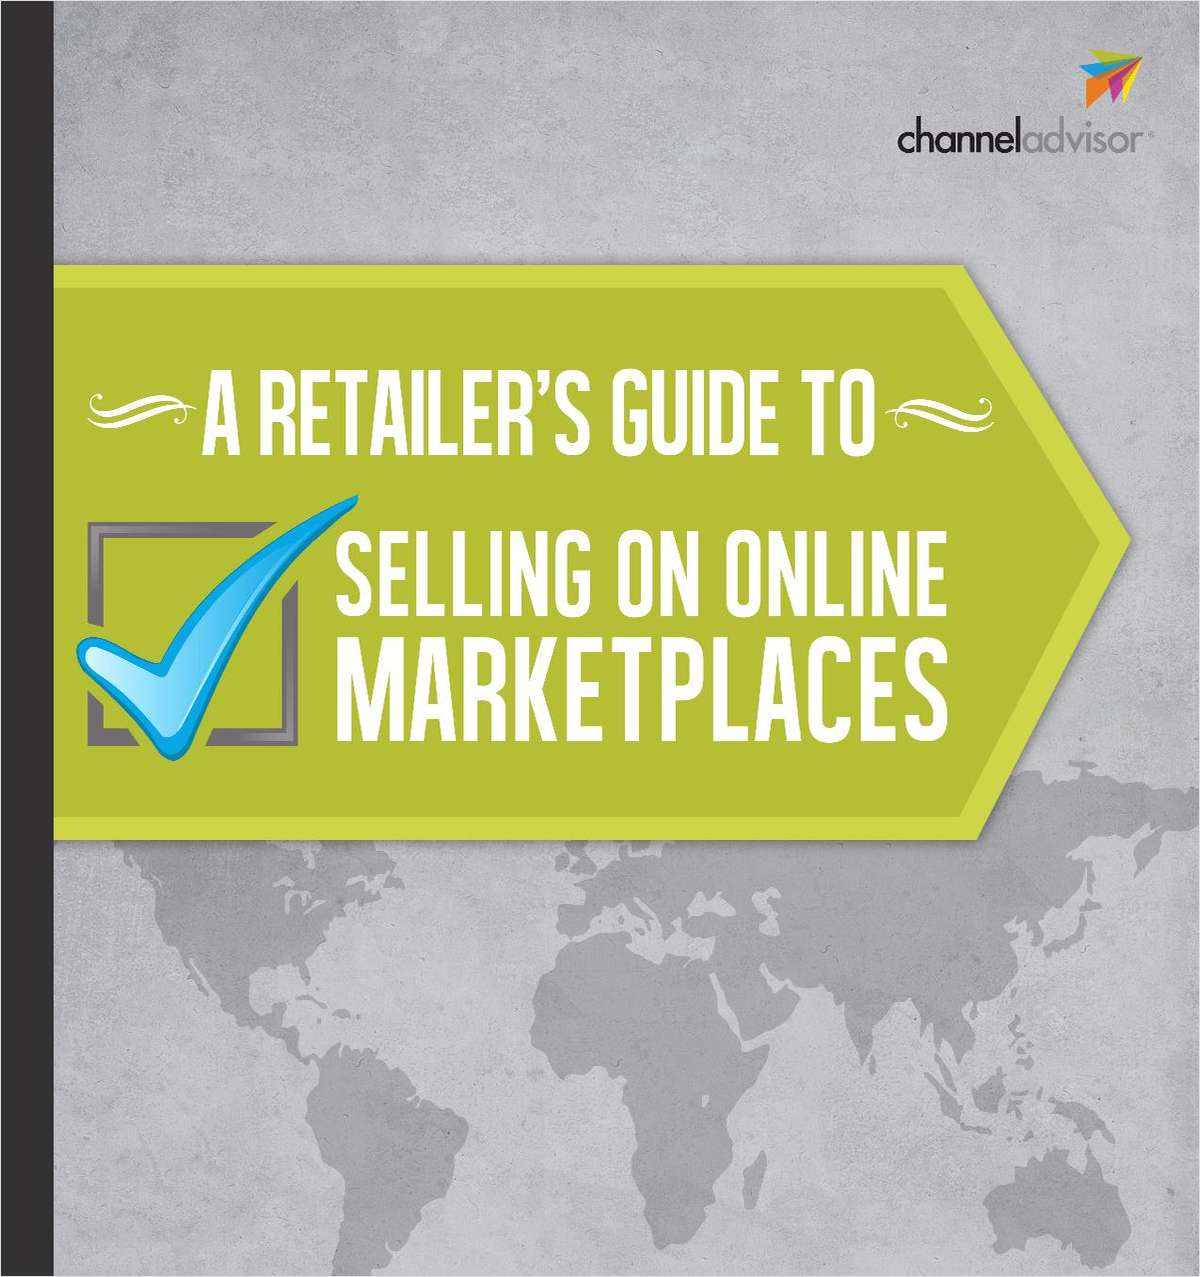 Retailer's Guide to Selling on Online Marketplaces